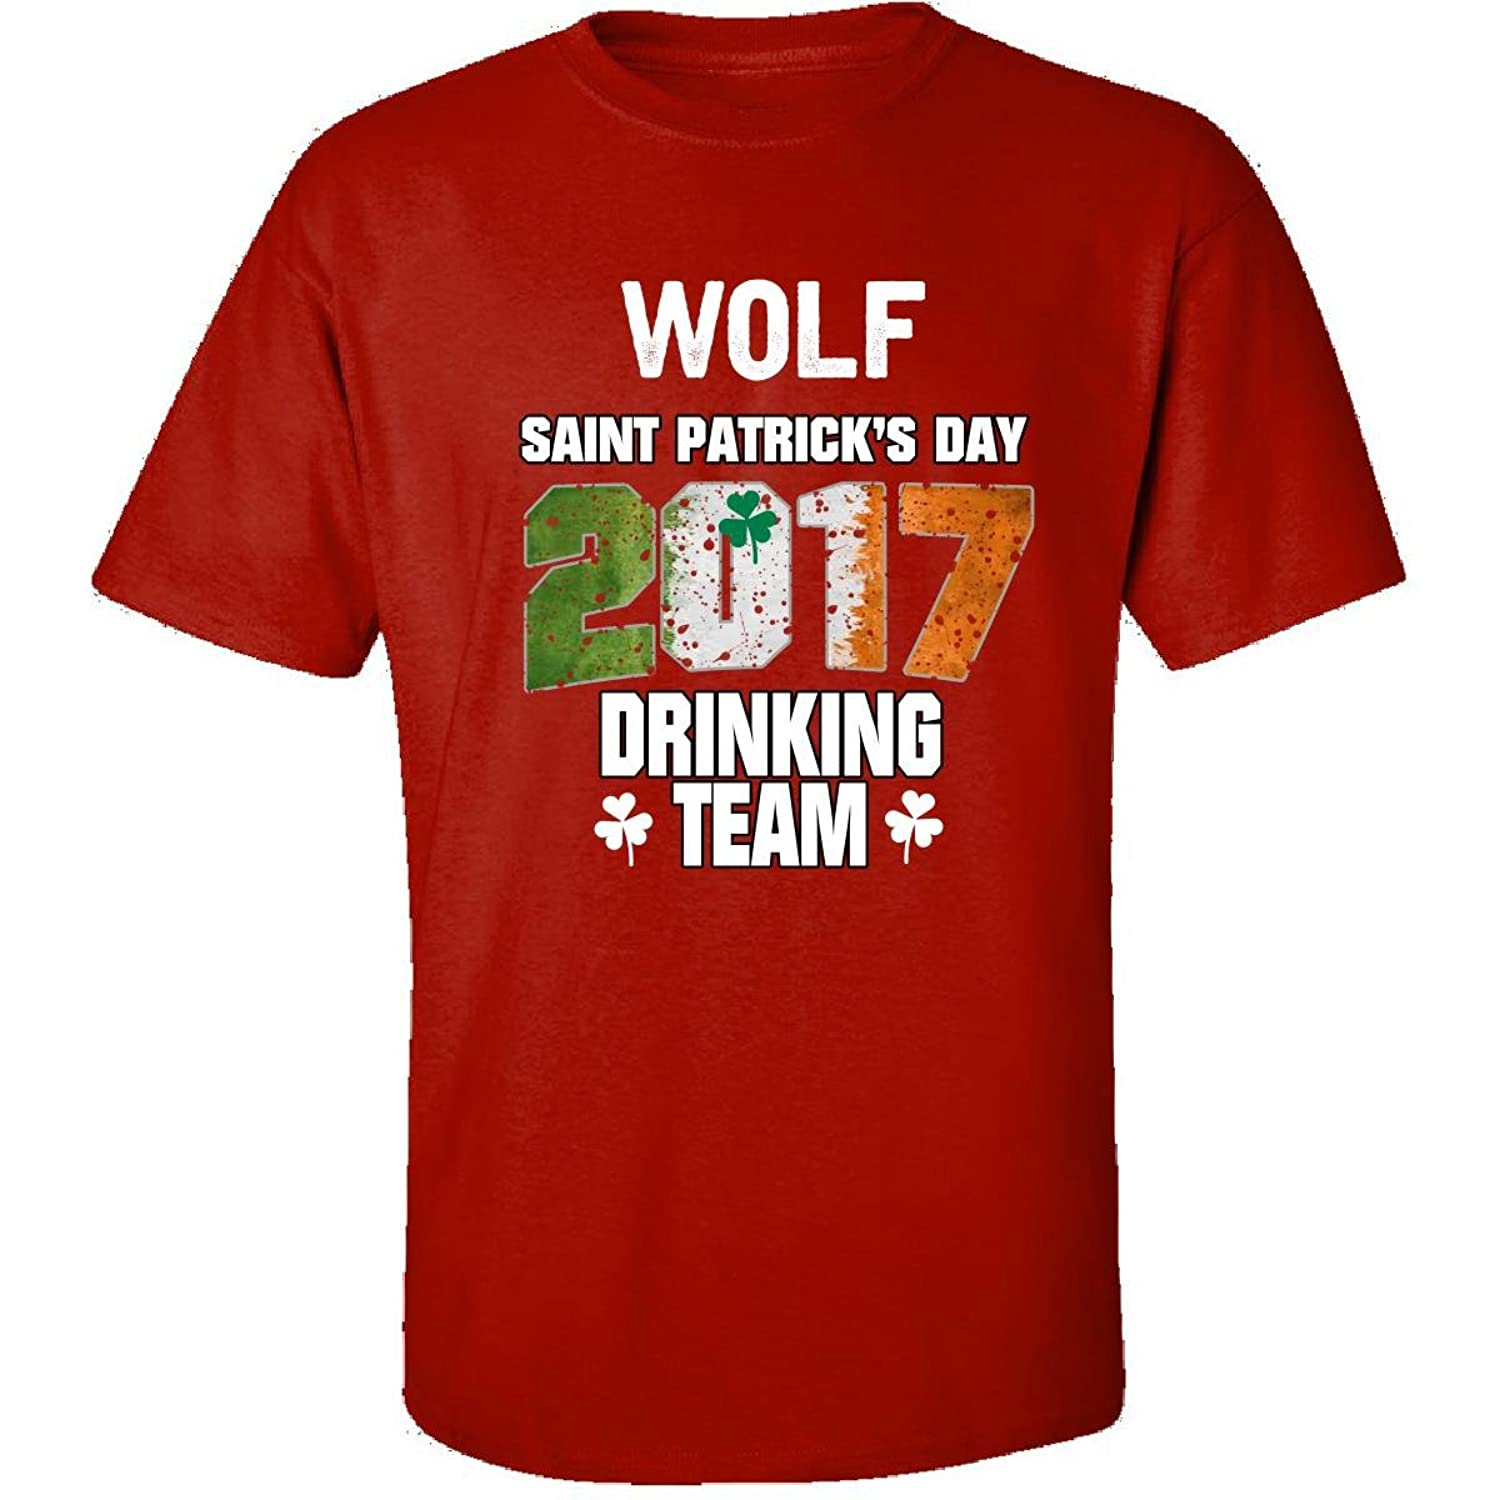 Wolf Irish St Patricks Day 2017 Drinking Team - Adult Shirt